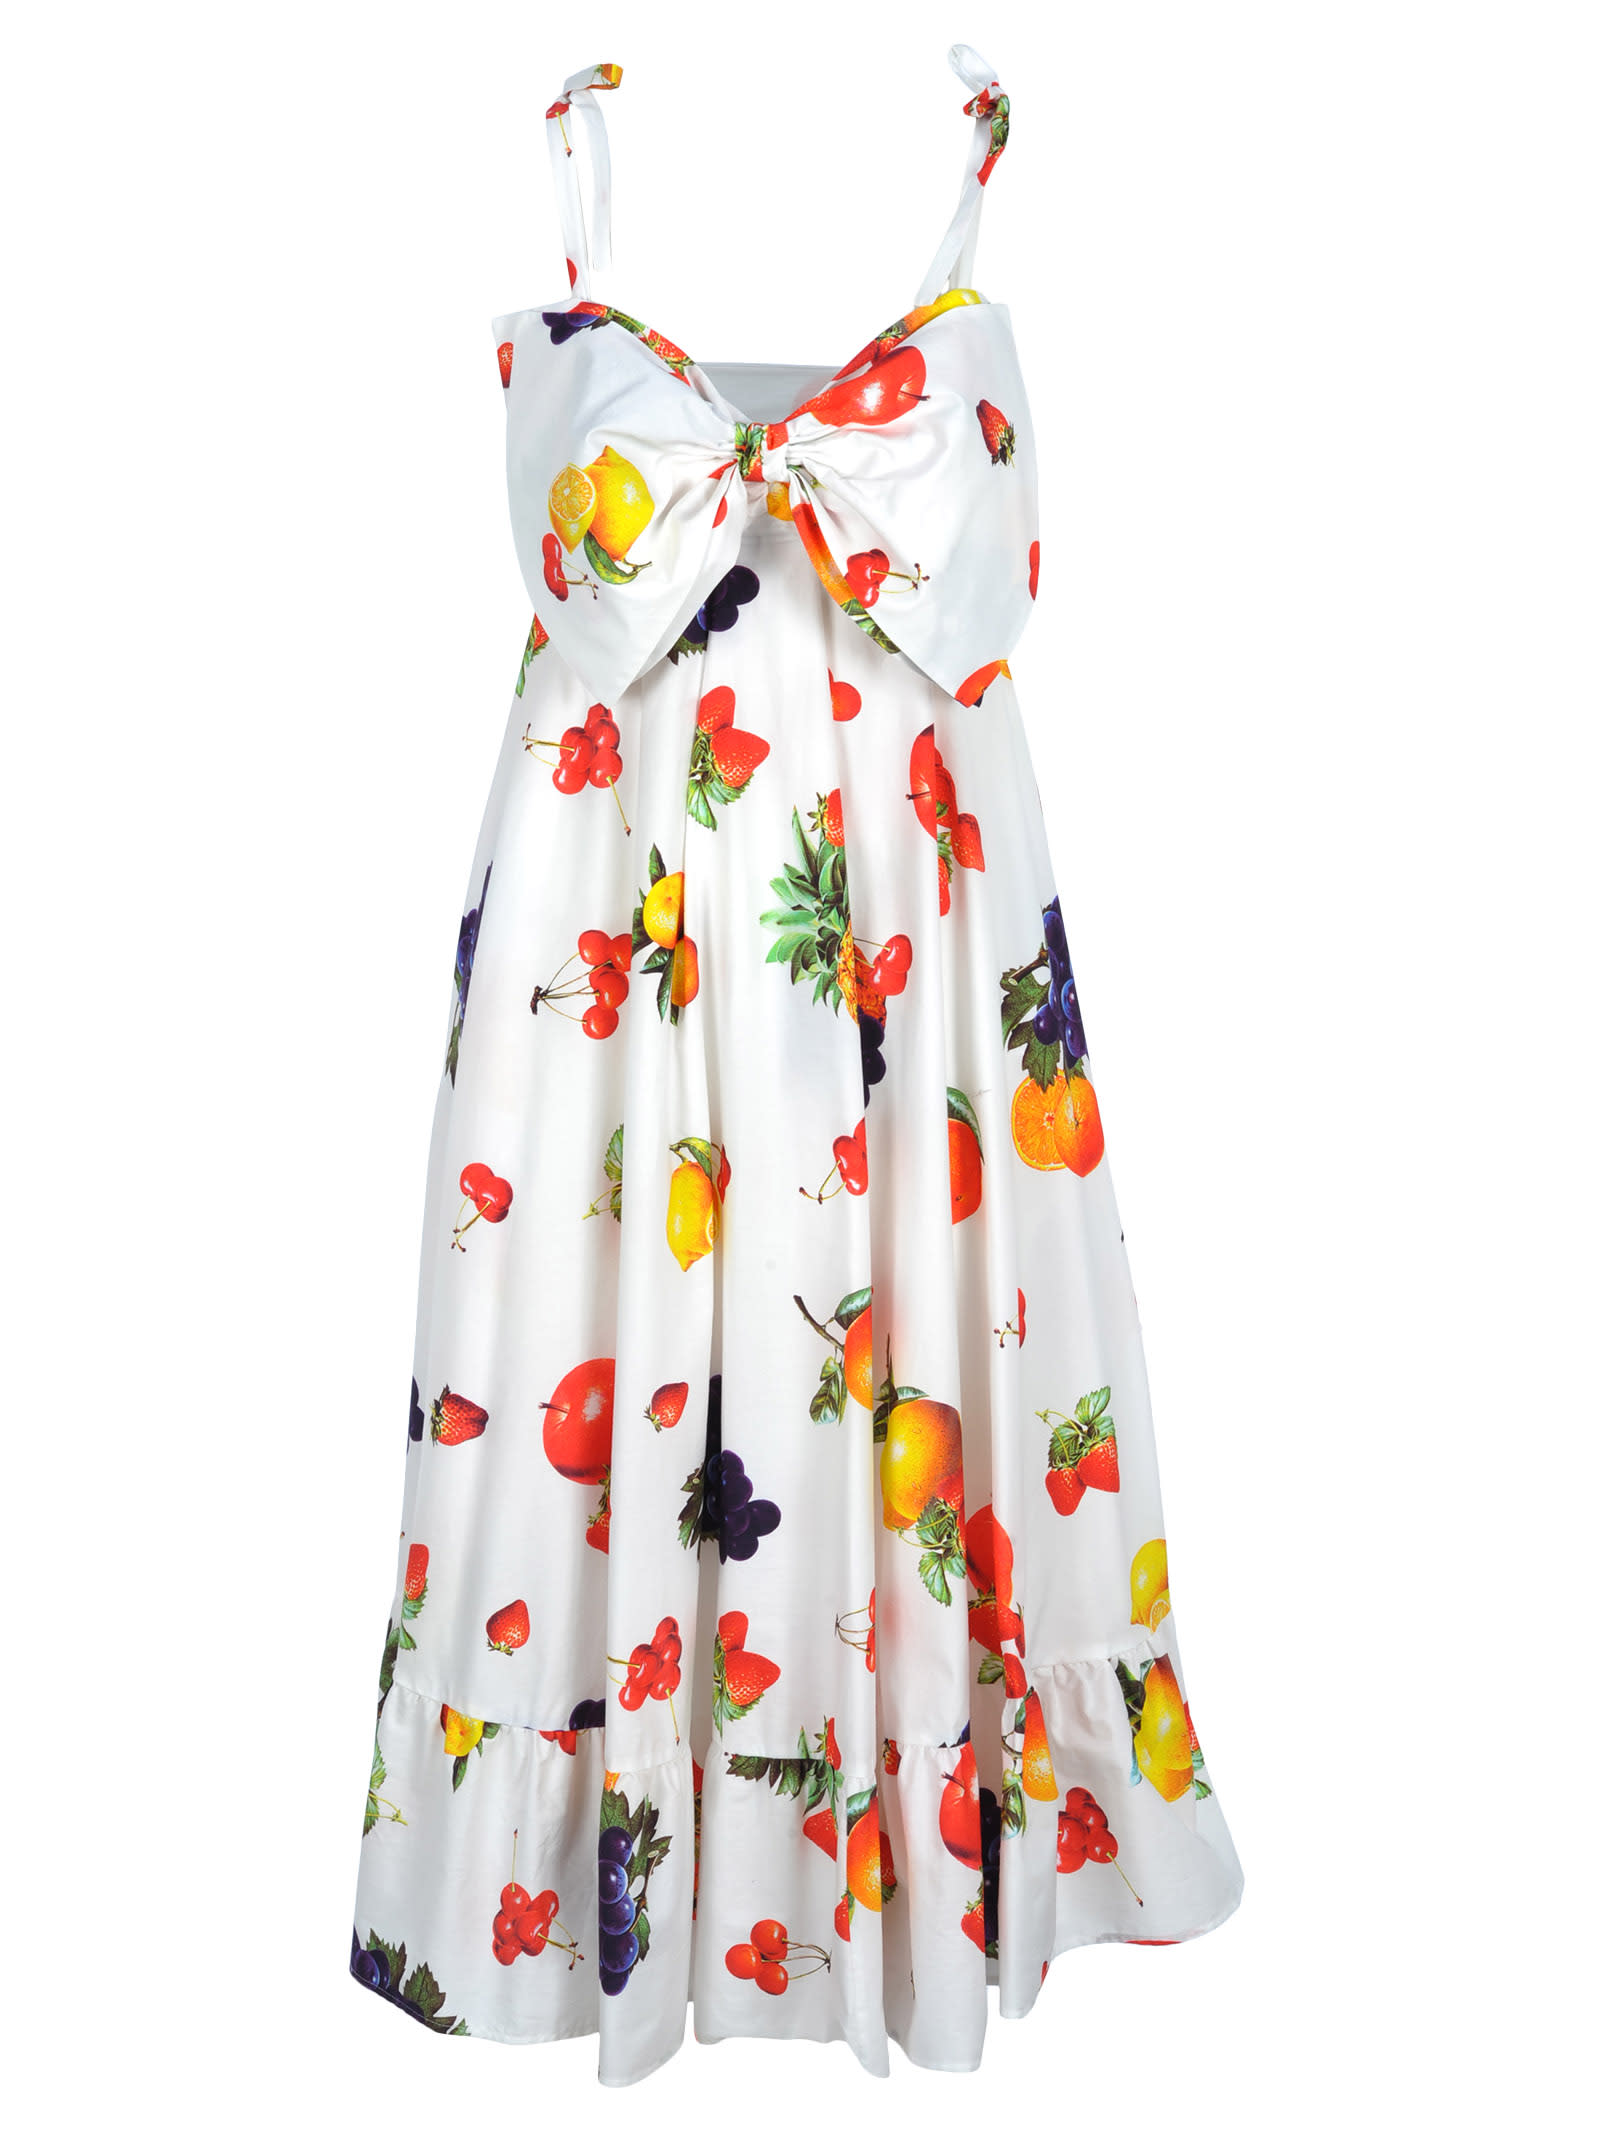 Msgm Msgm Fruits Print Dress